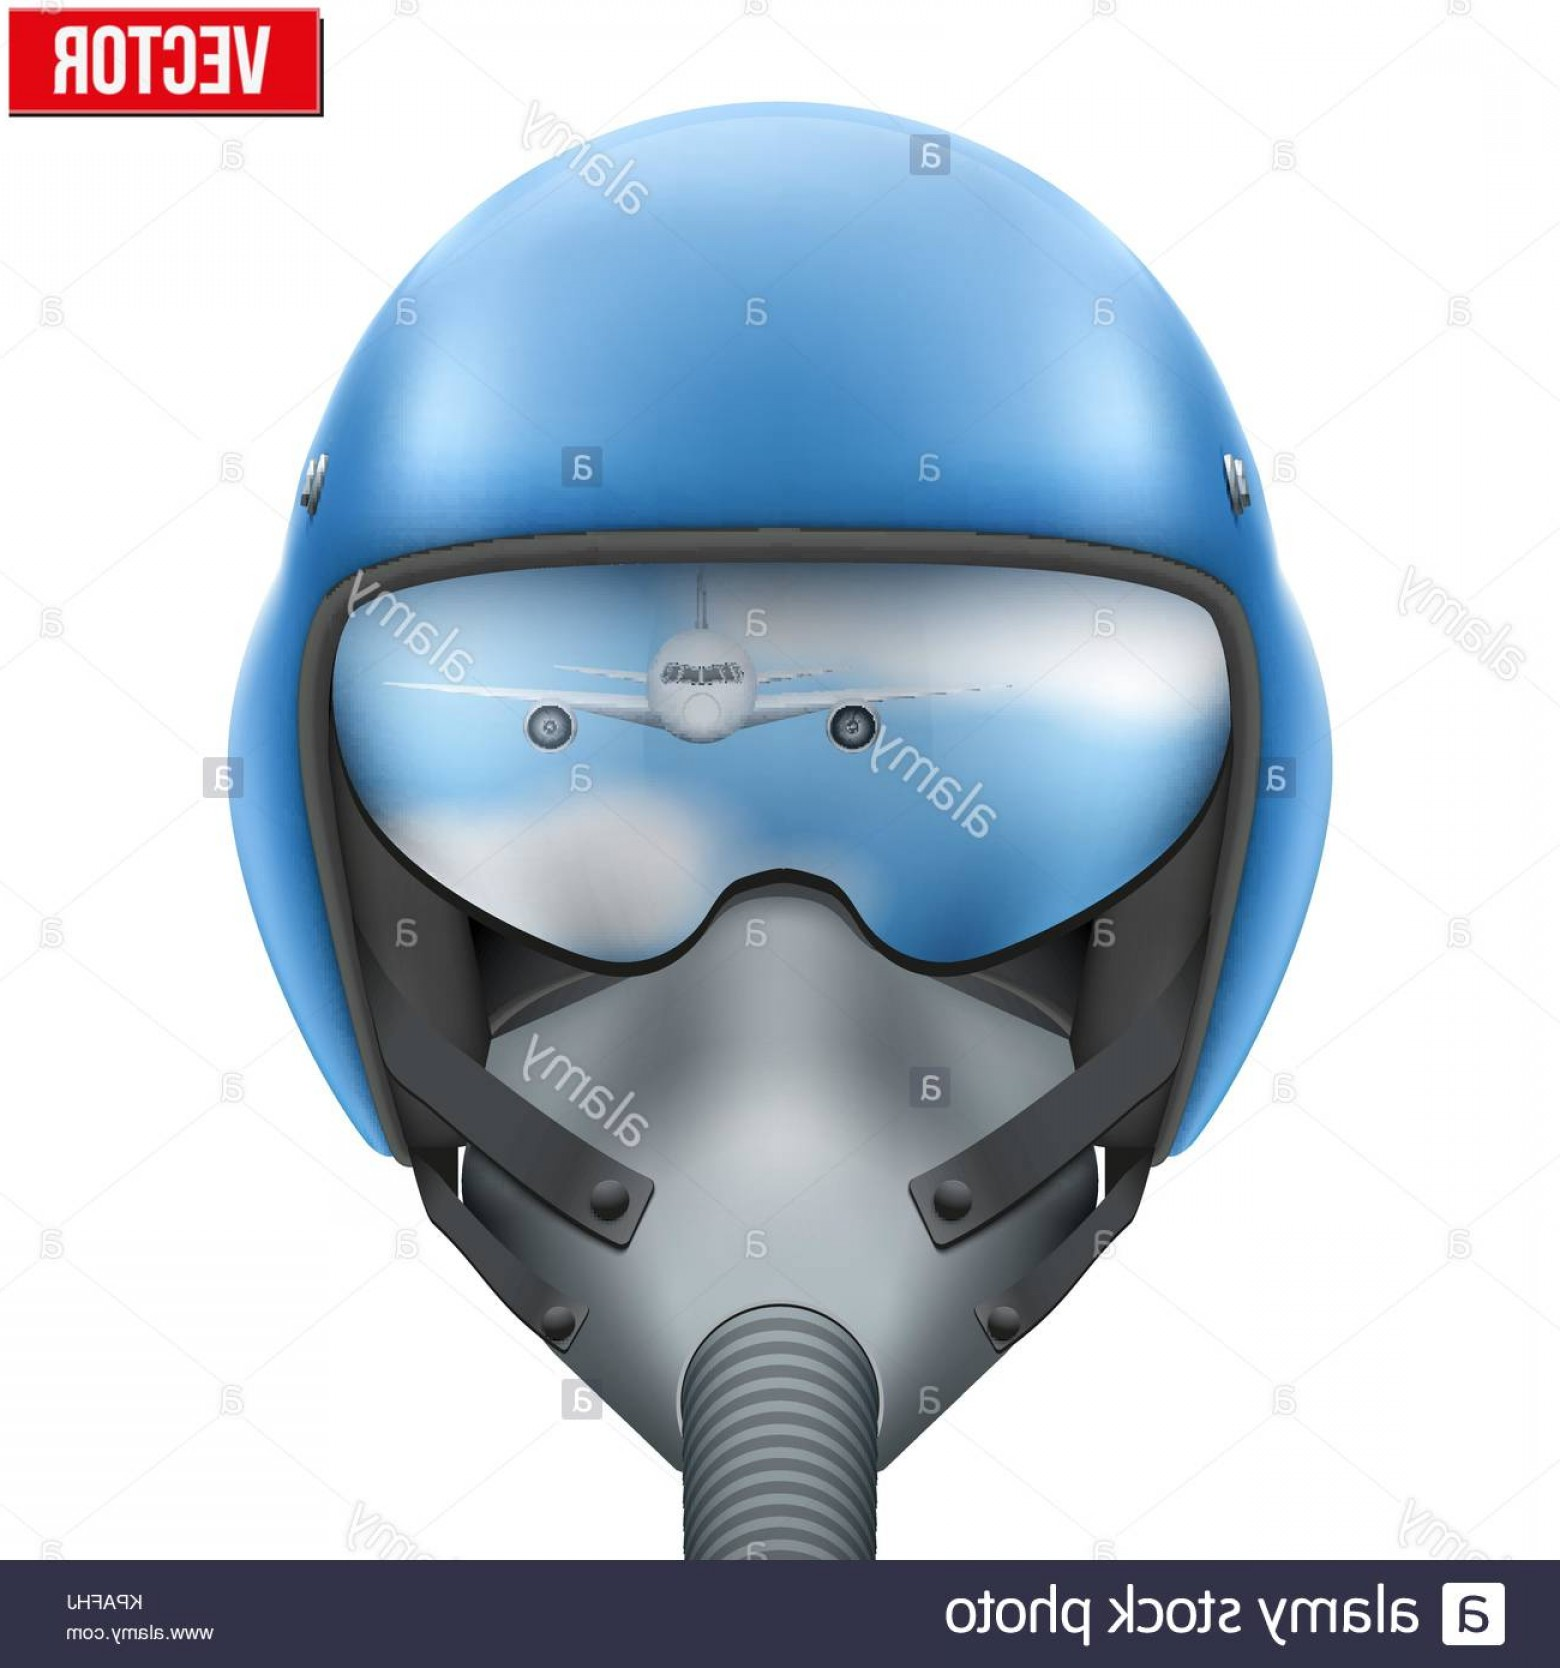 Fighter Helmet Vectors: Stock Image Military Flight Fighter Pilot Helmet Vector